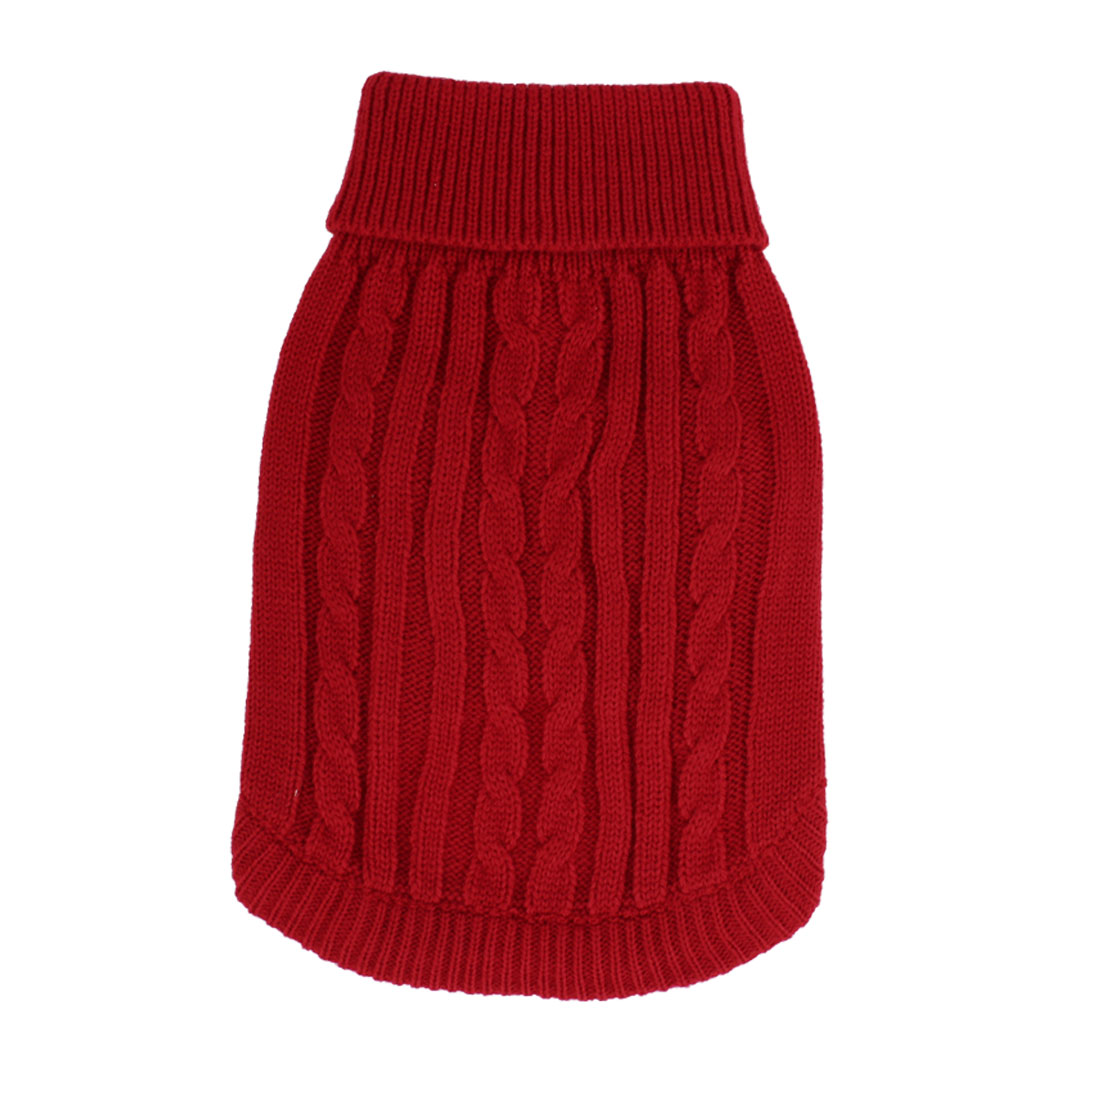 Pet Dog Doggy Ribbed Cuff Twisted Knitwear Turtleneck Apparel Sweater Red Size XS